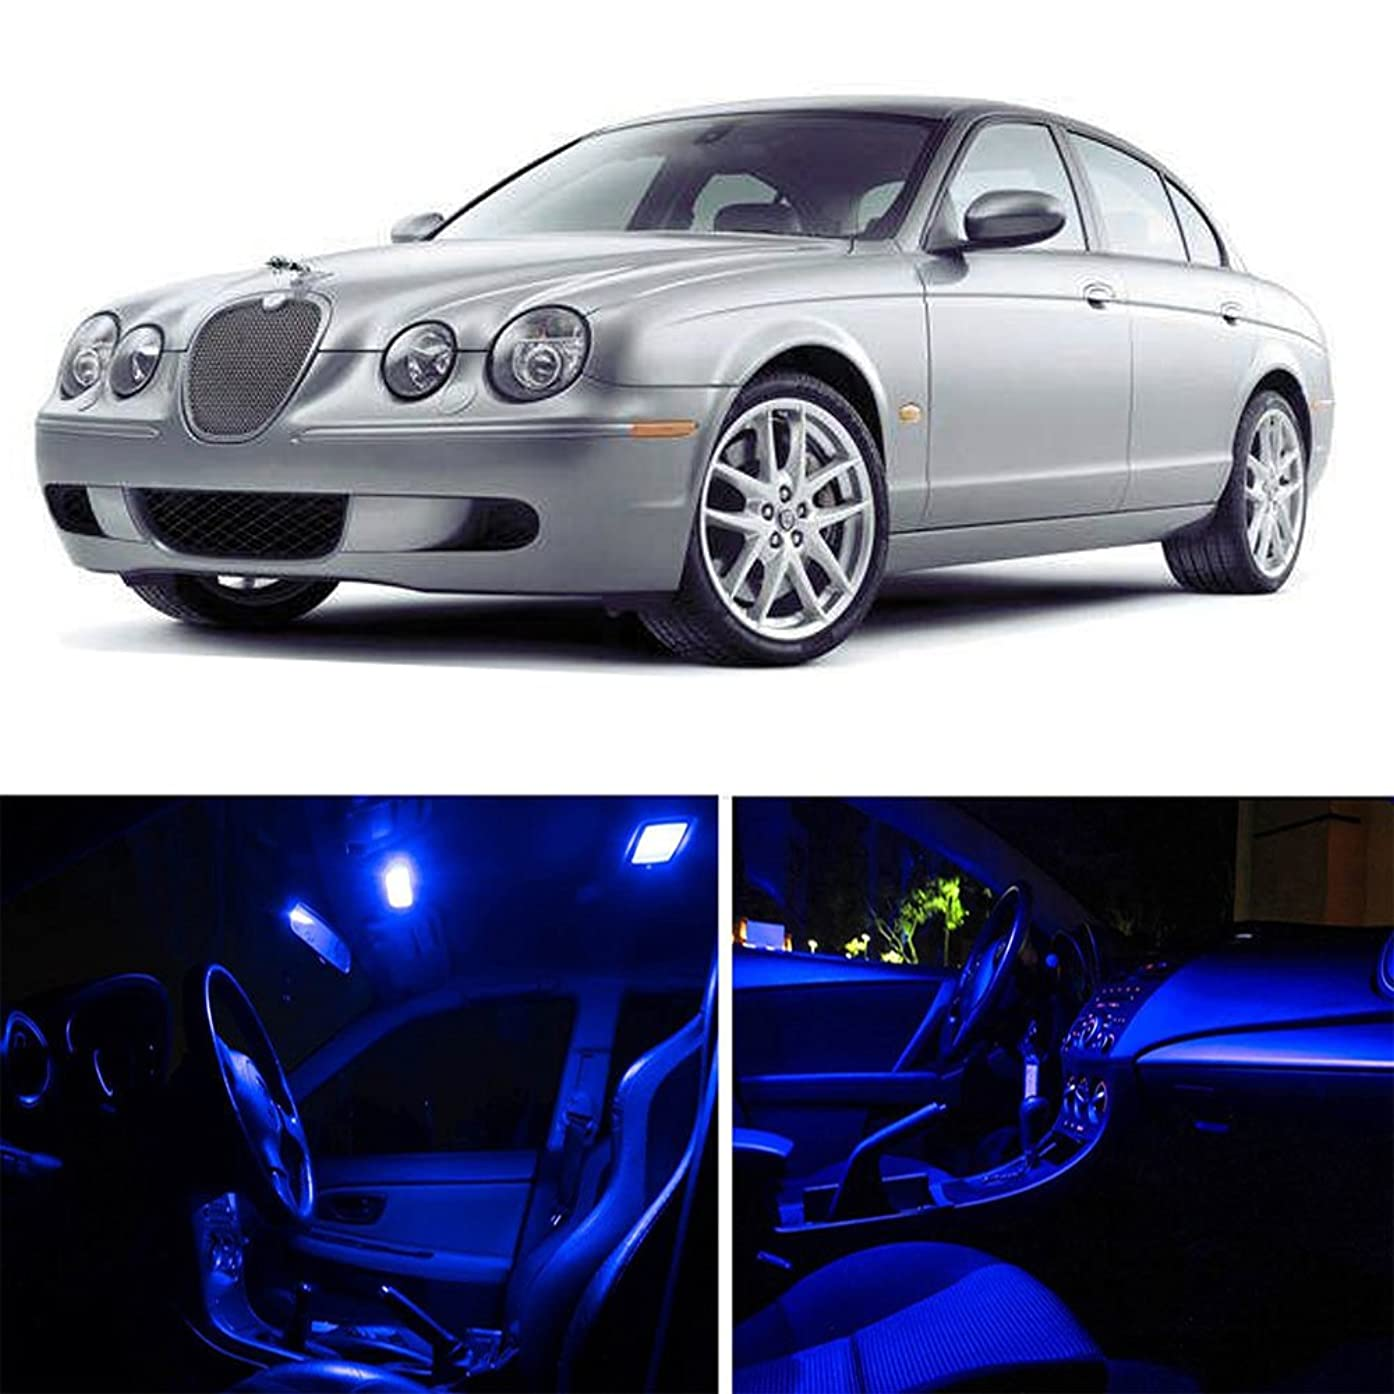 cciyu Replacement fit for Jaguar S-Type 2000-2008 Package Kit Blue LED Interior Light Accessories Replacement Parts 13 Pack